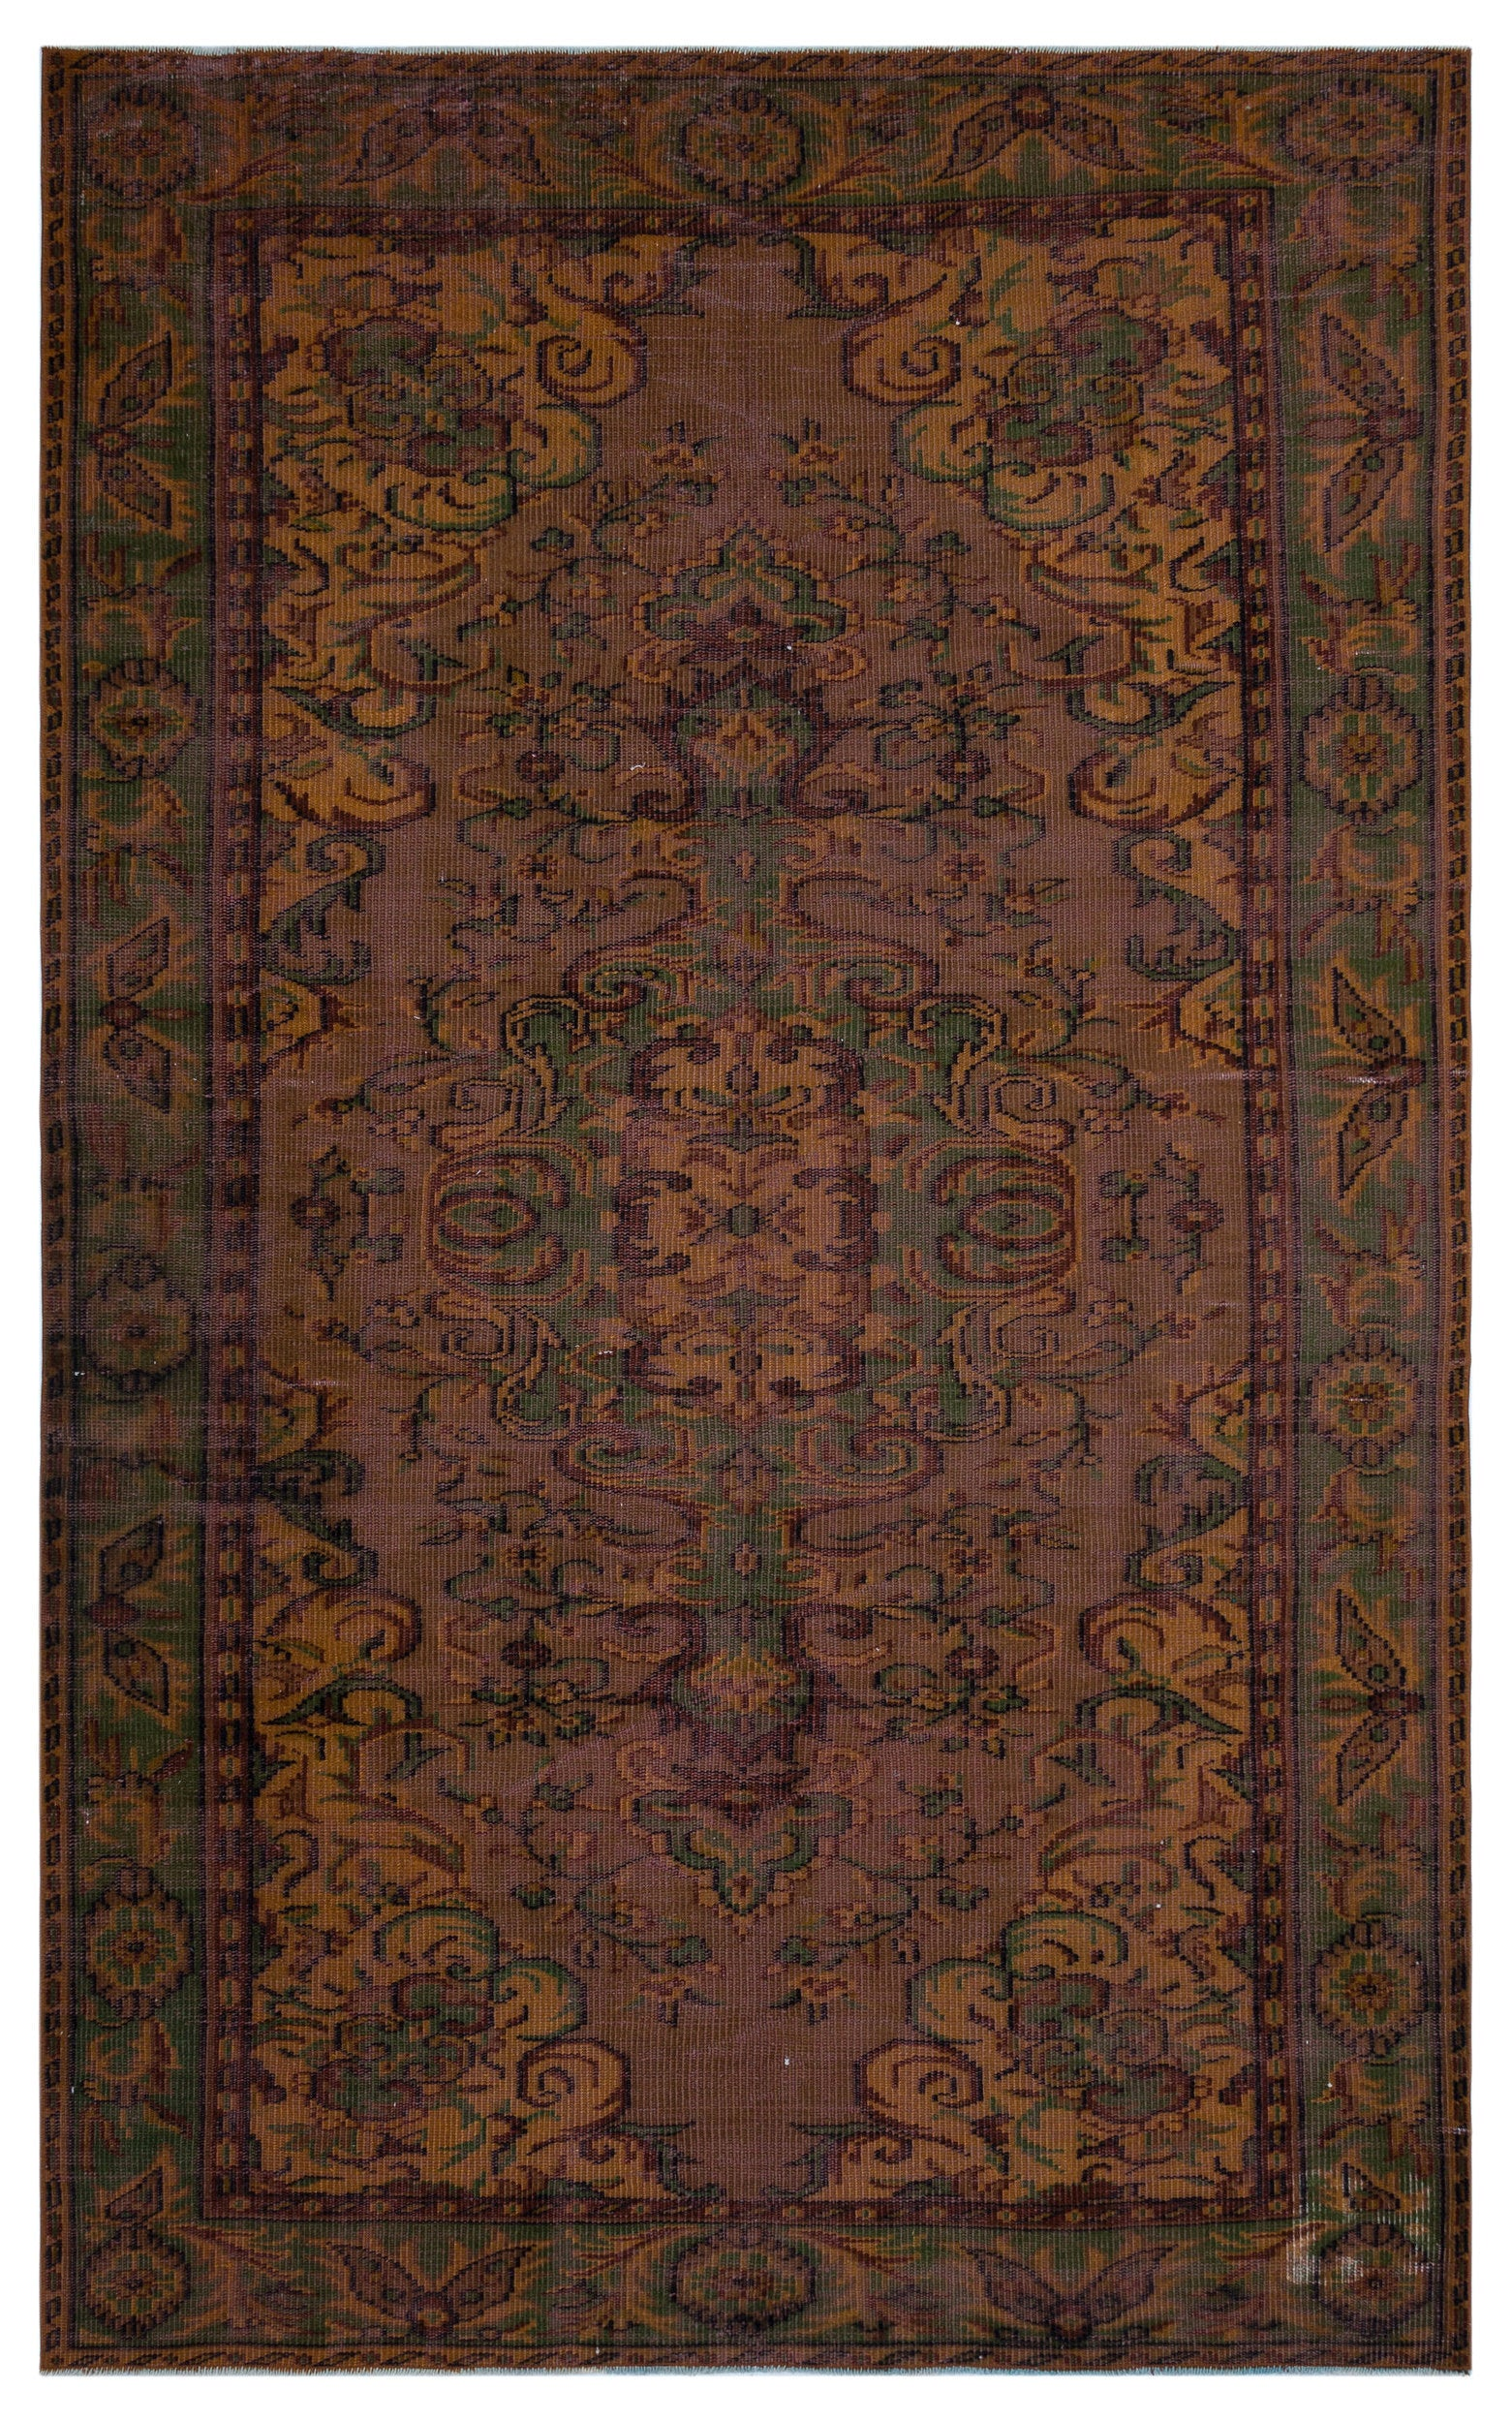 Brown Over Dyed Vintage Rug 5'8'' x 9'3'' ft 173 x 282 cm